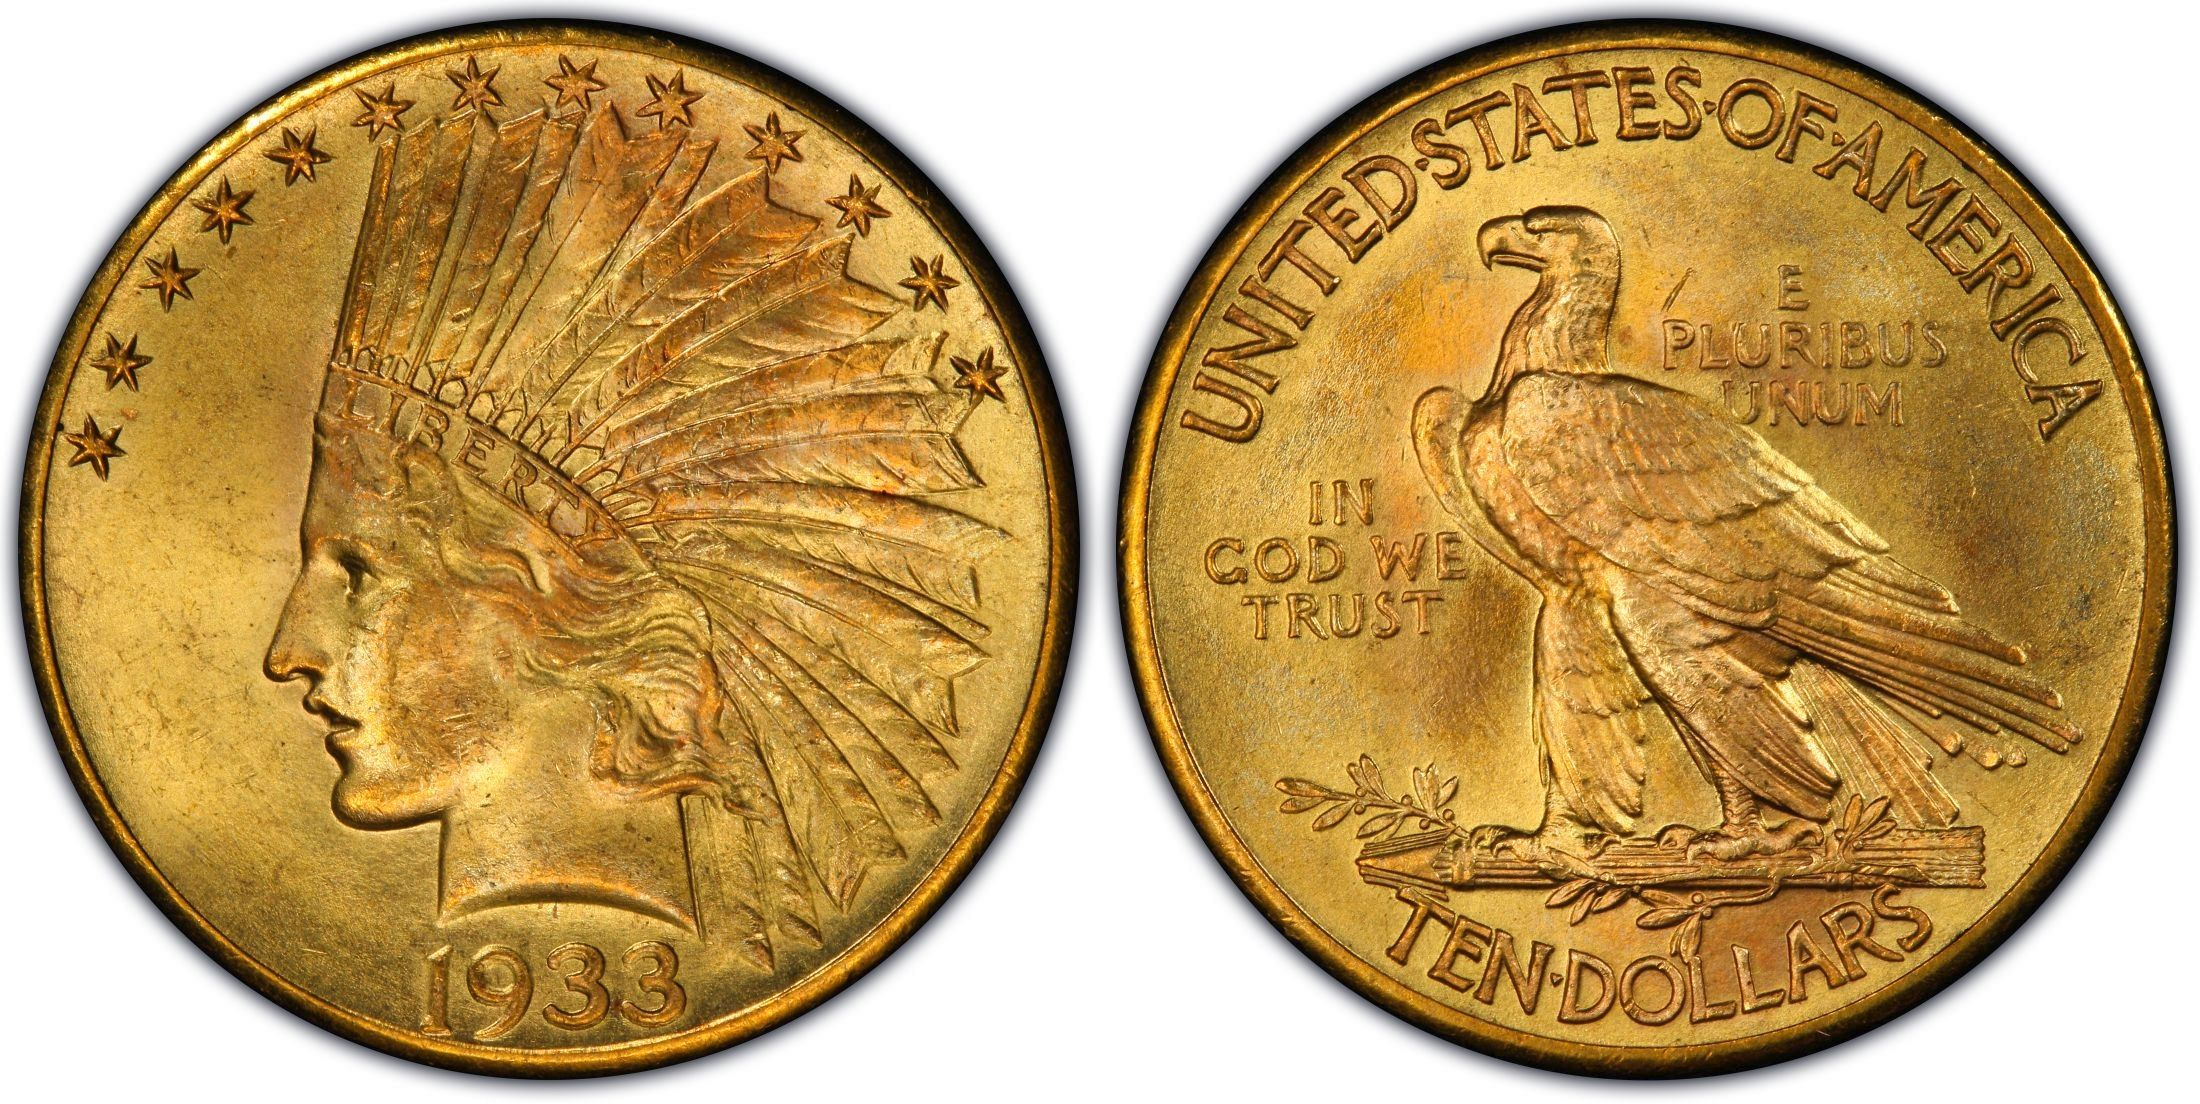 1933 10 Dollar Indian Gold Coin The Original Mintage Of The 1933 10 Dollar Gold Pieces Was High But Very Few Were Gold Coins Gold And Silver Coins Rare Coins